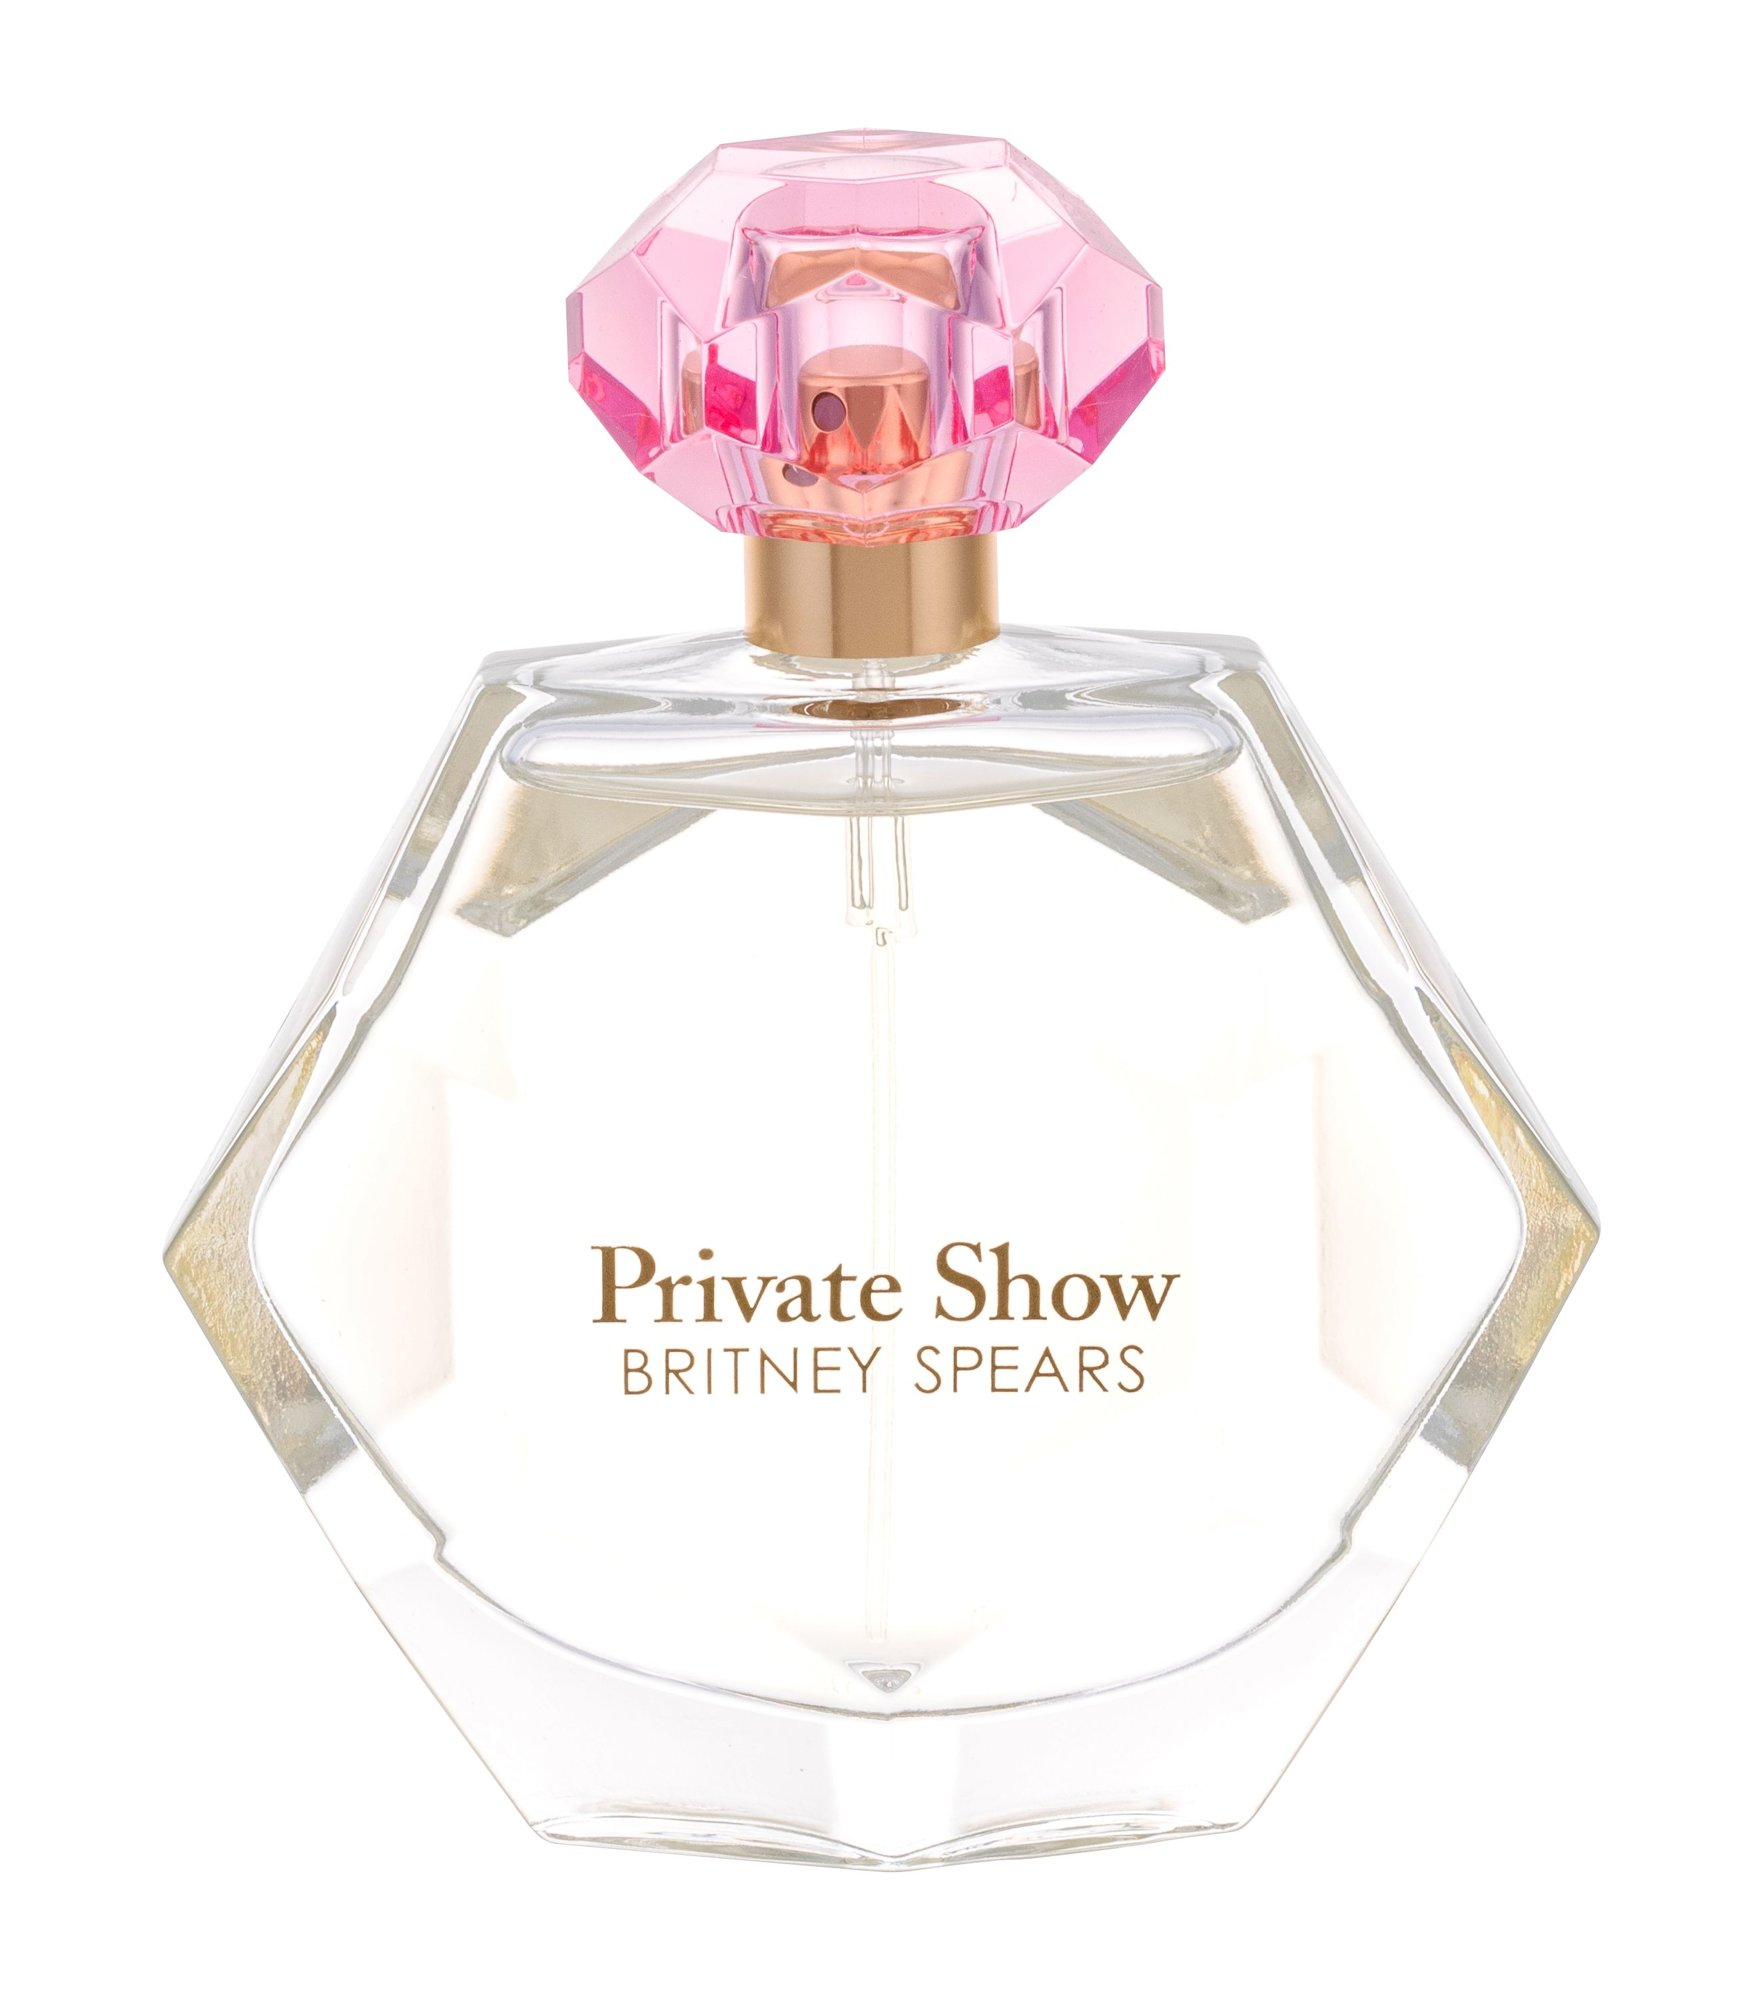 Britney Spears Private Show, Parfumovaná voda 100ml - Tester